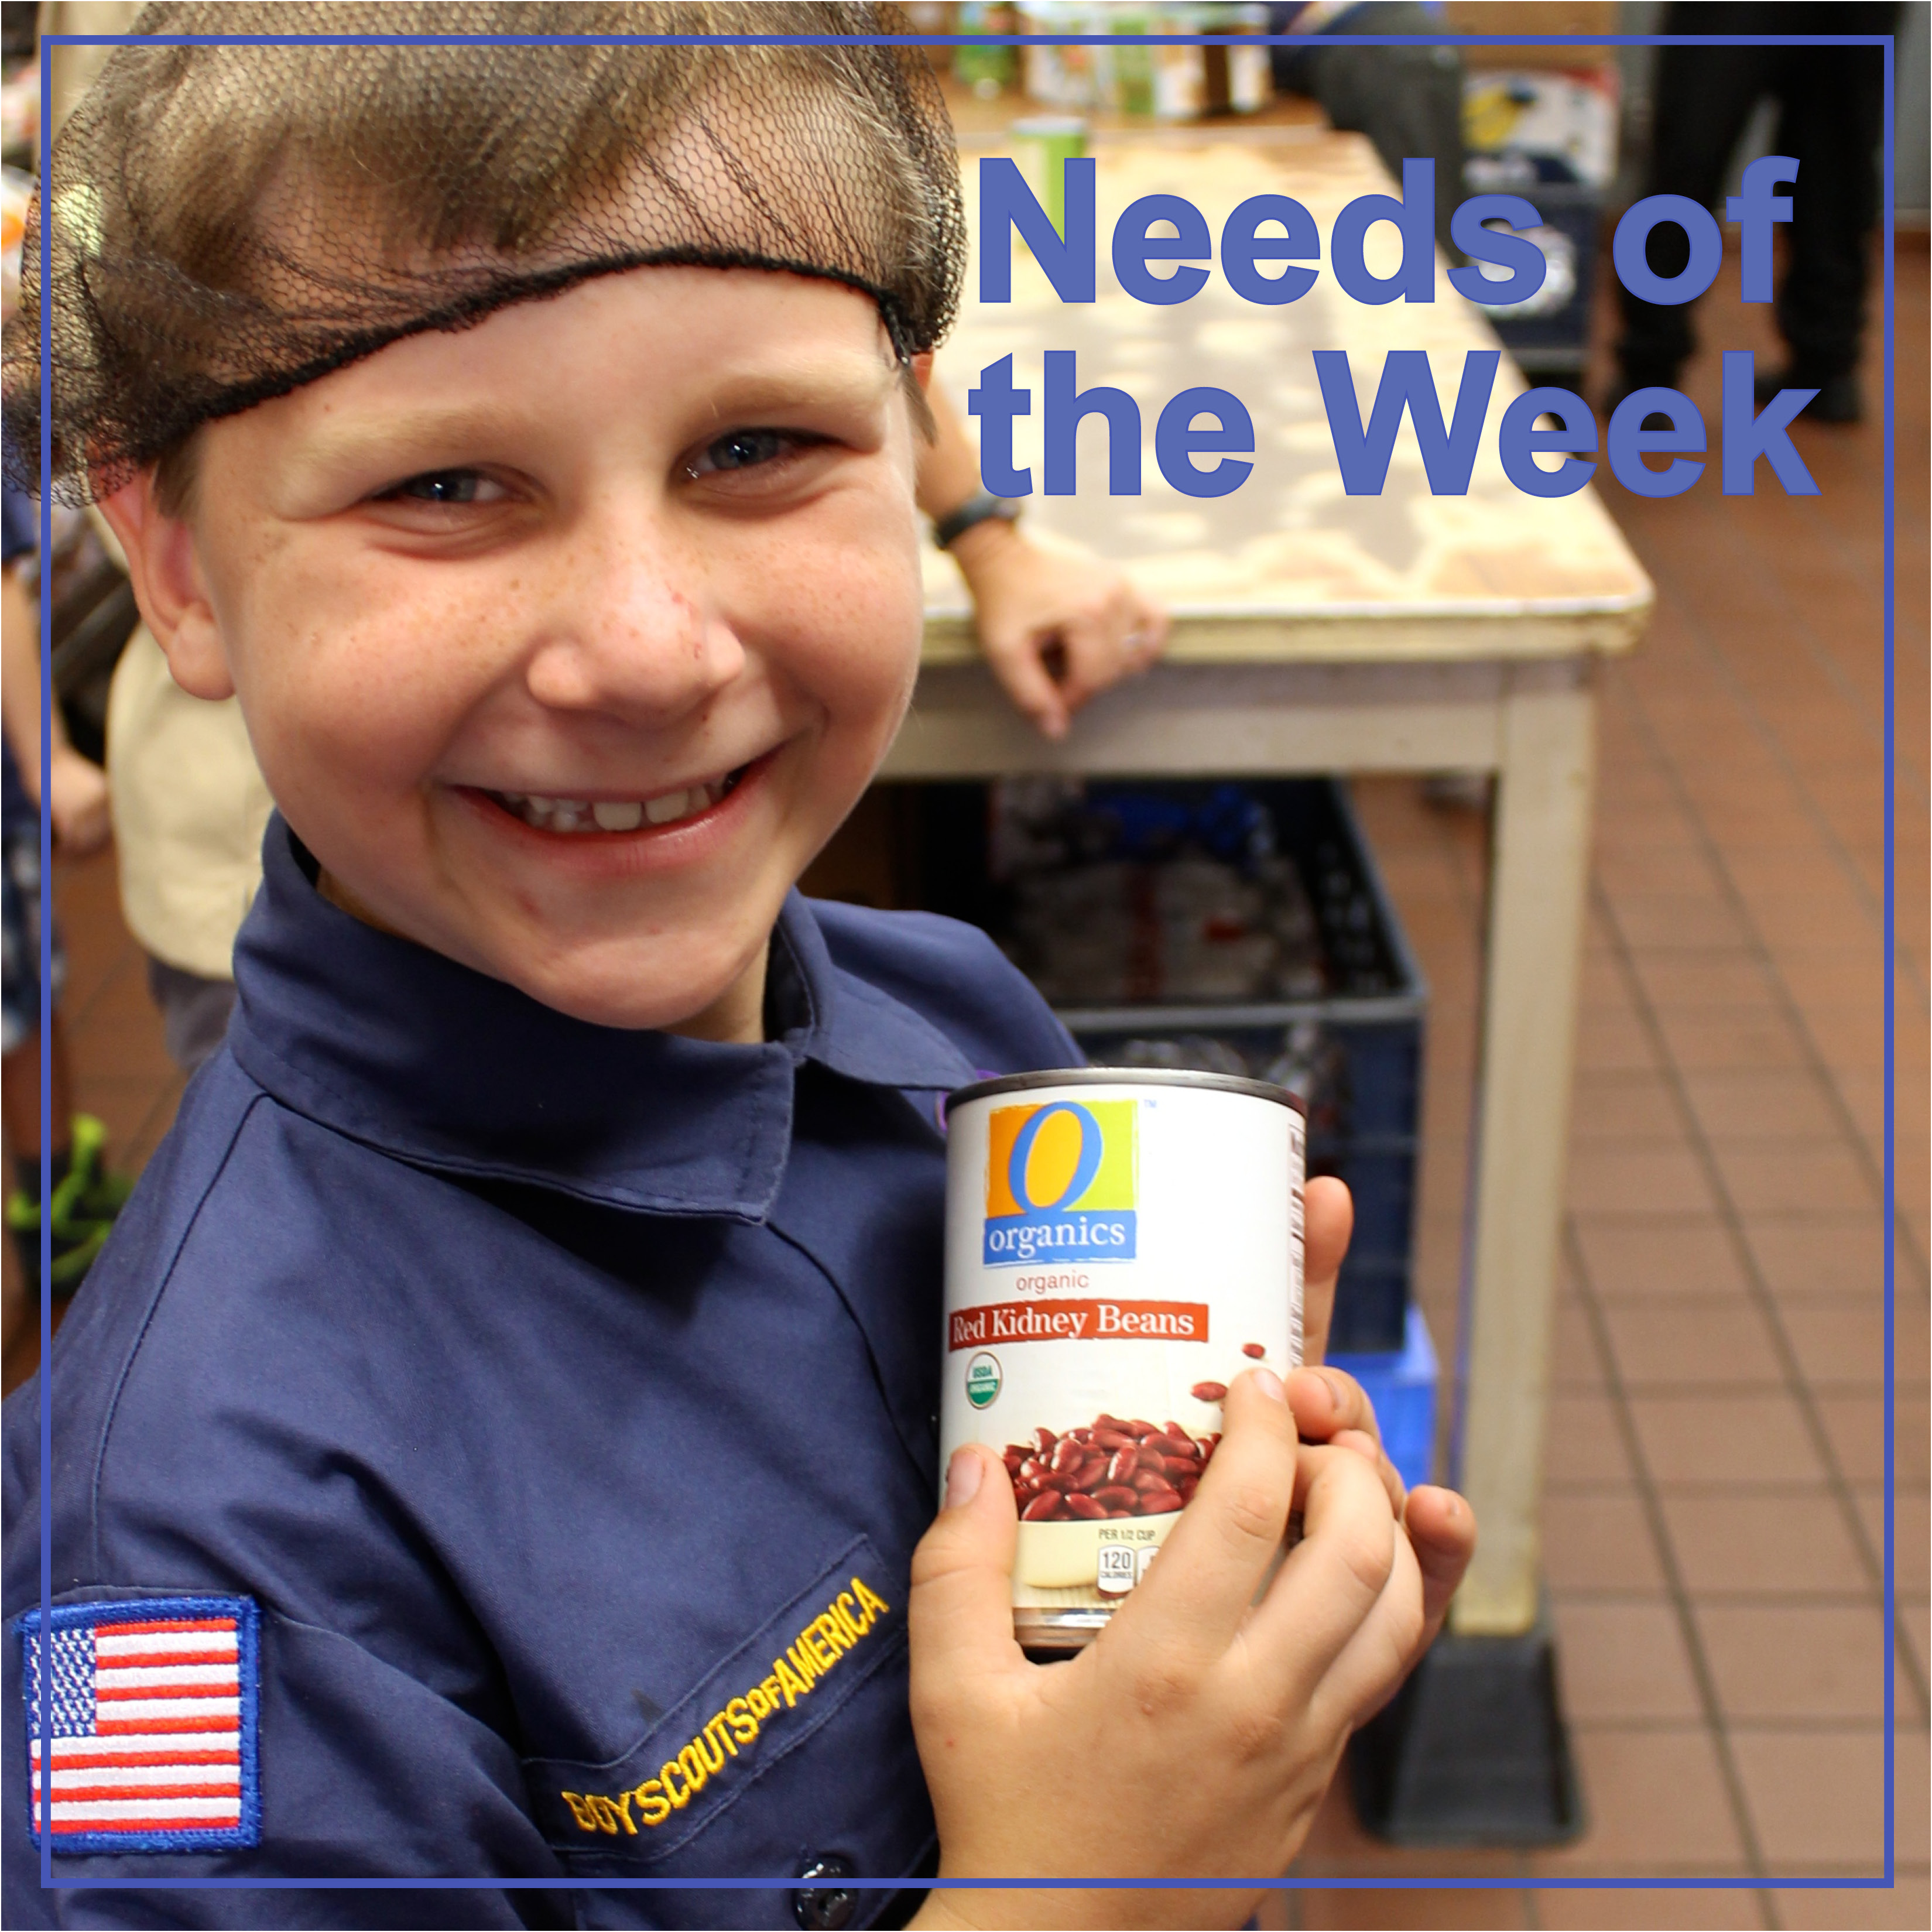 needs of the week boy holding canned food